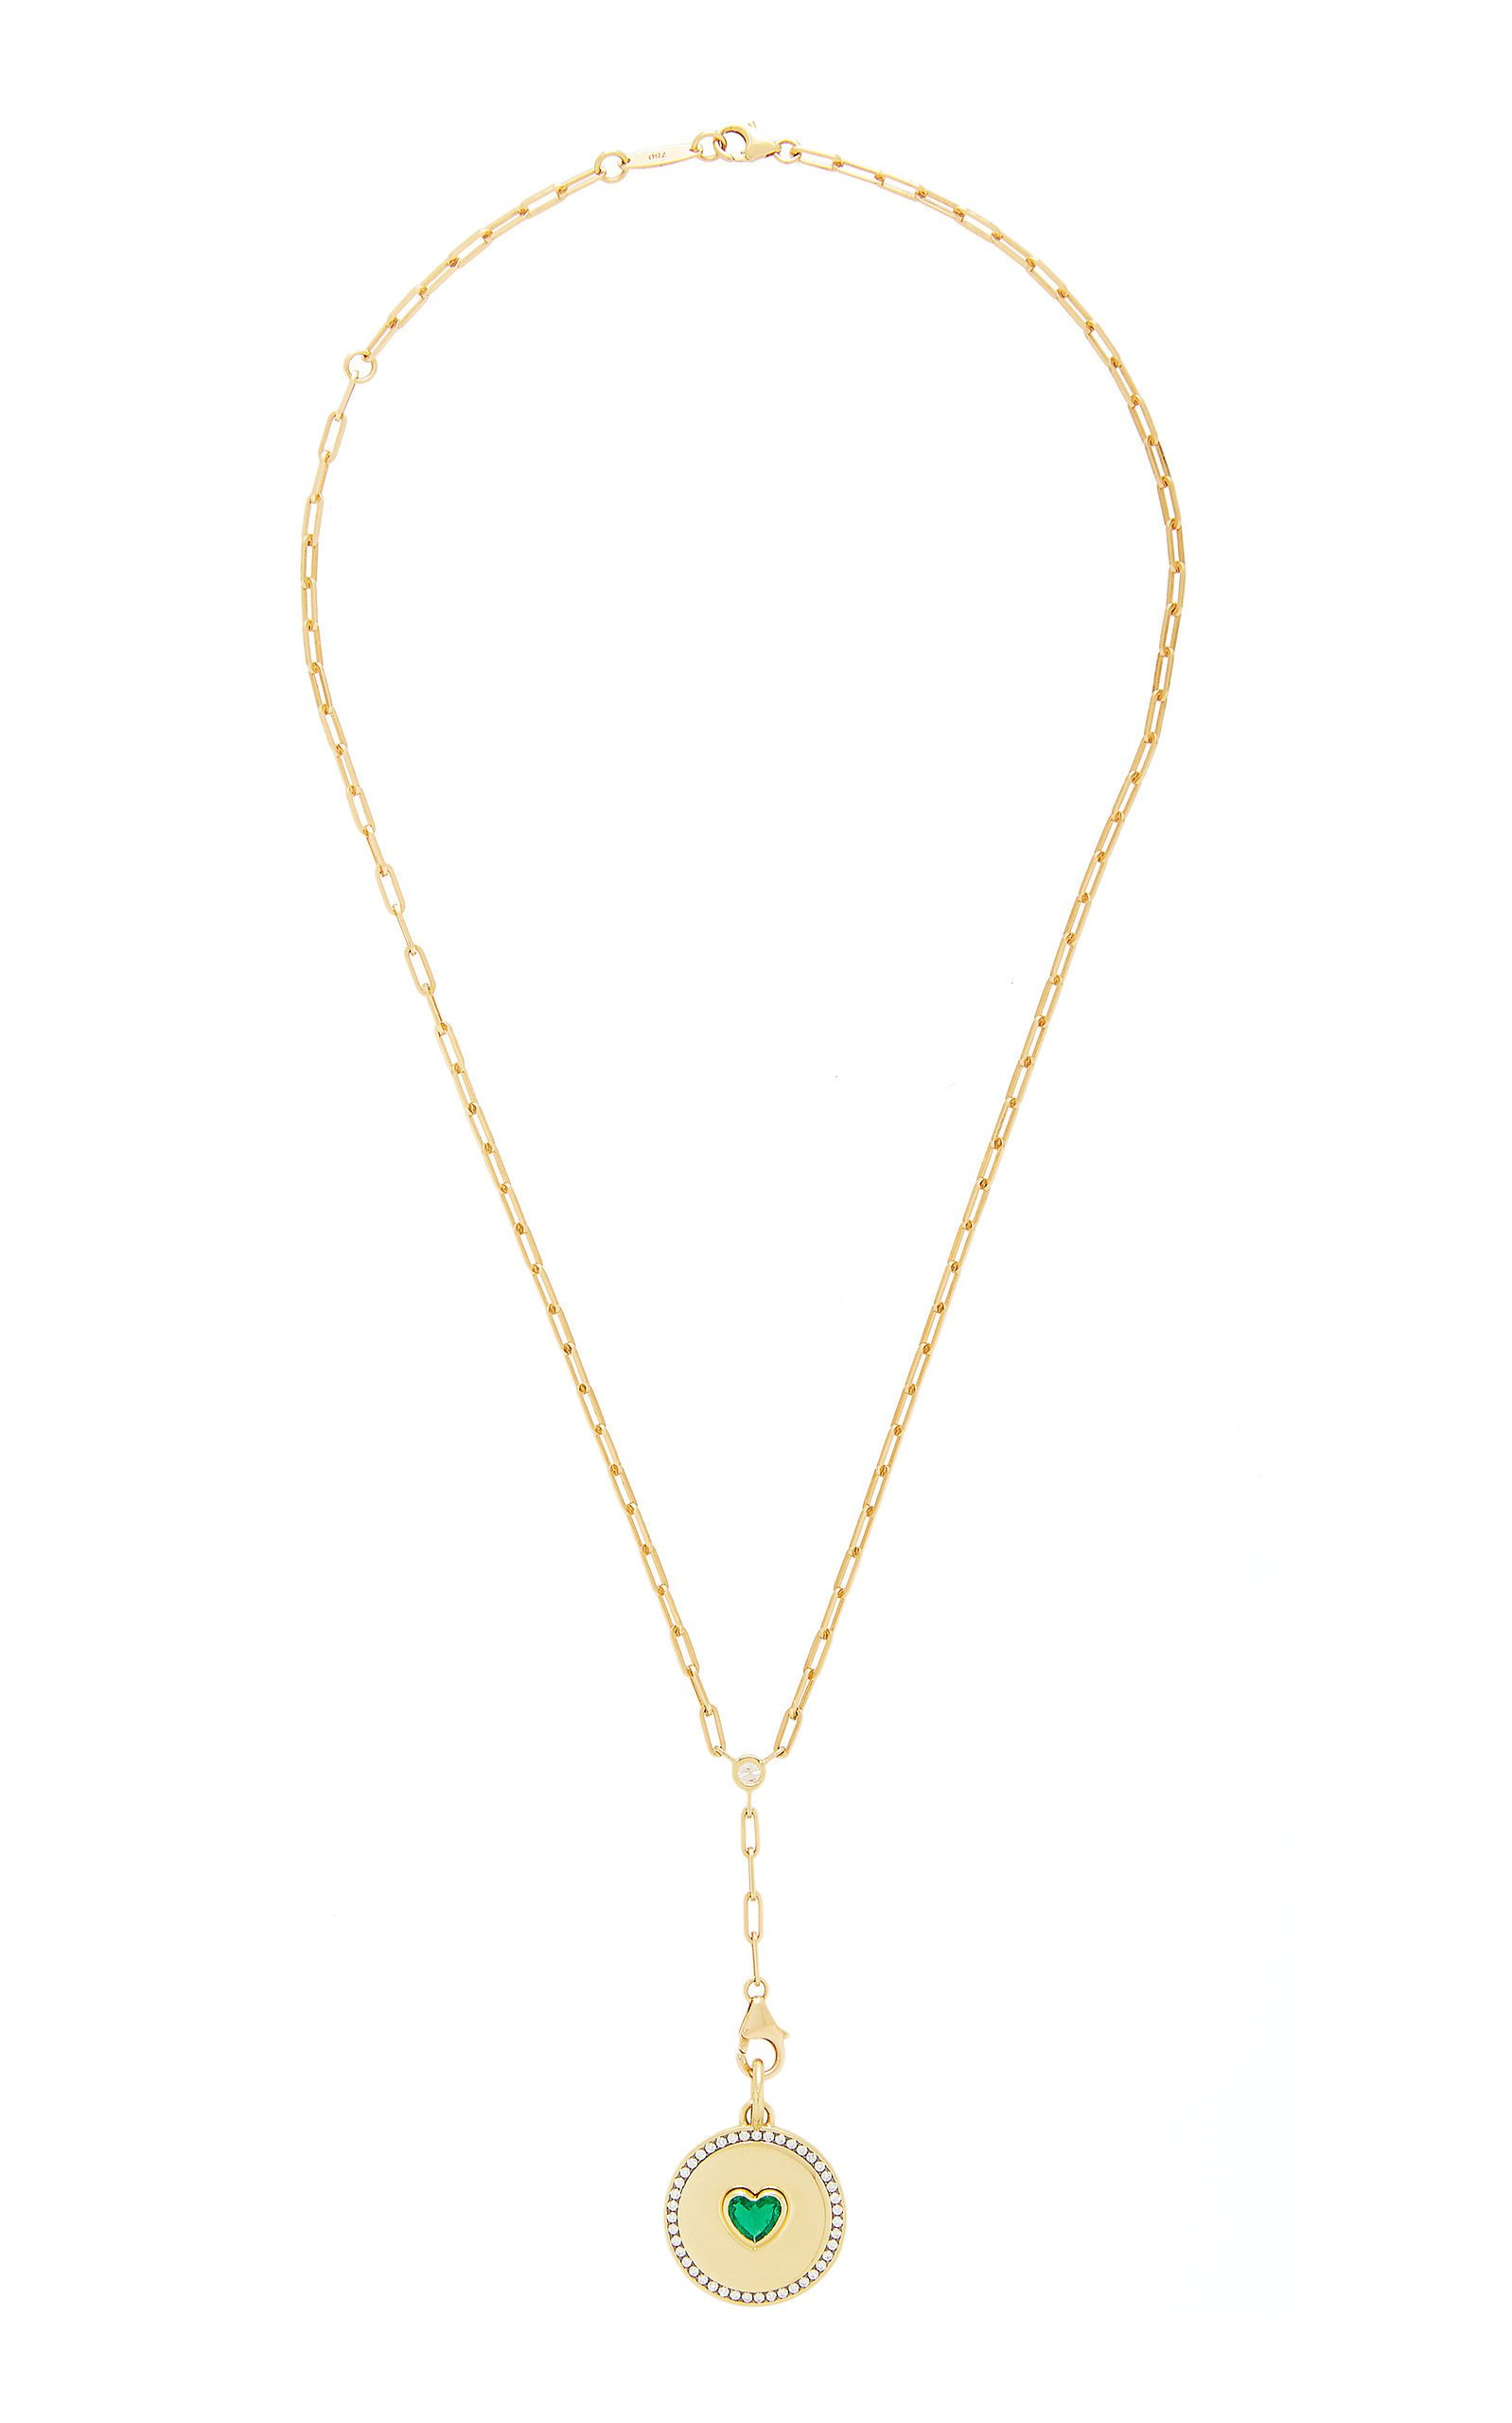 Jemma Wynne 18K Yellow Prive Necklace with Emerald Heart Medallion